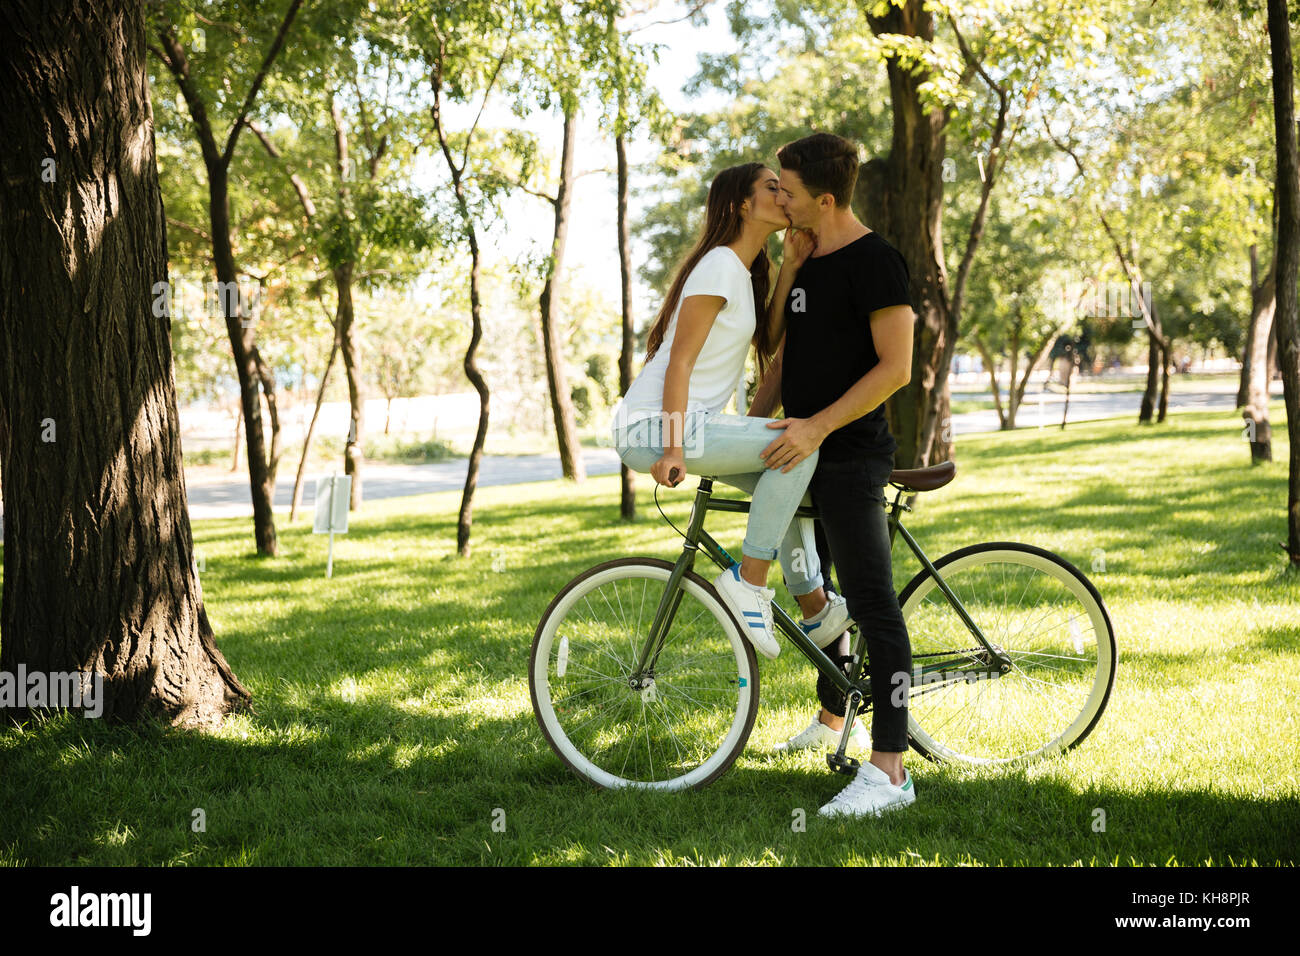 Young attractive couple kissing each other while a girl in sitting on a bicycle outdoors - Stock Image